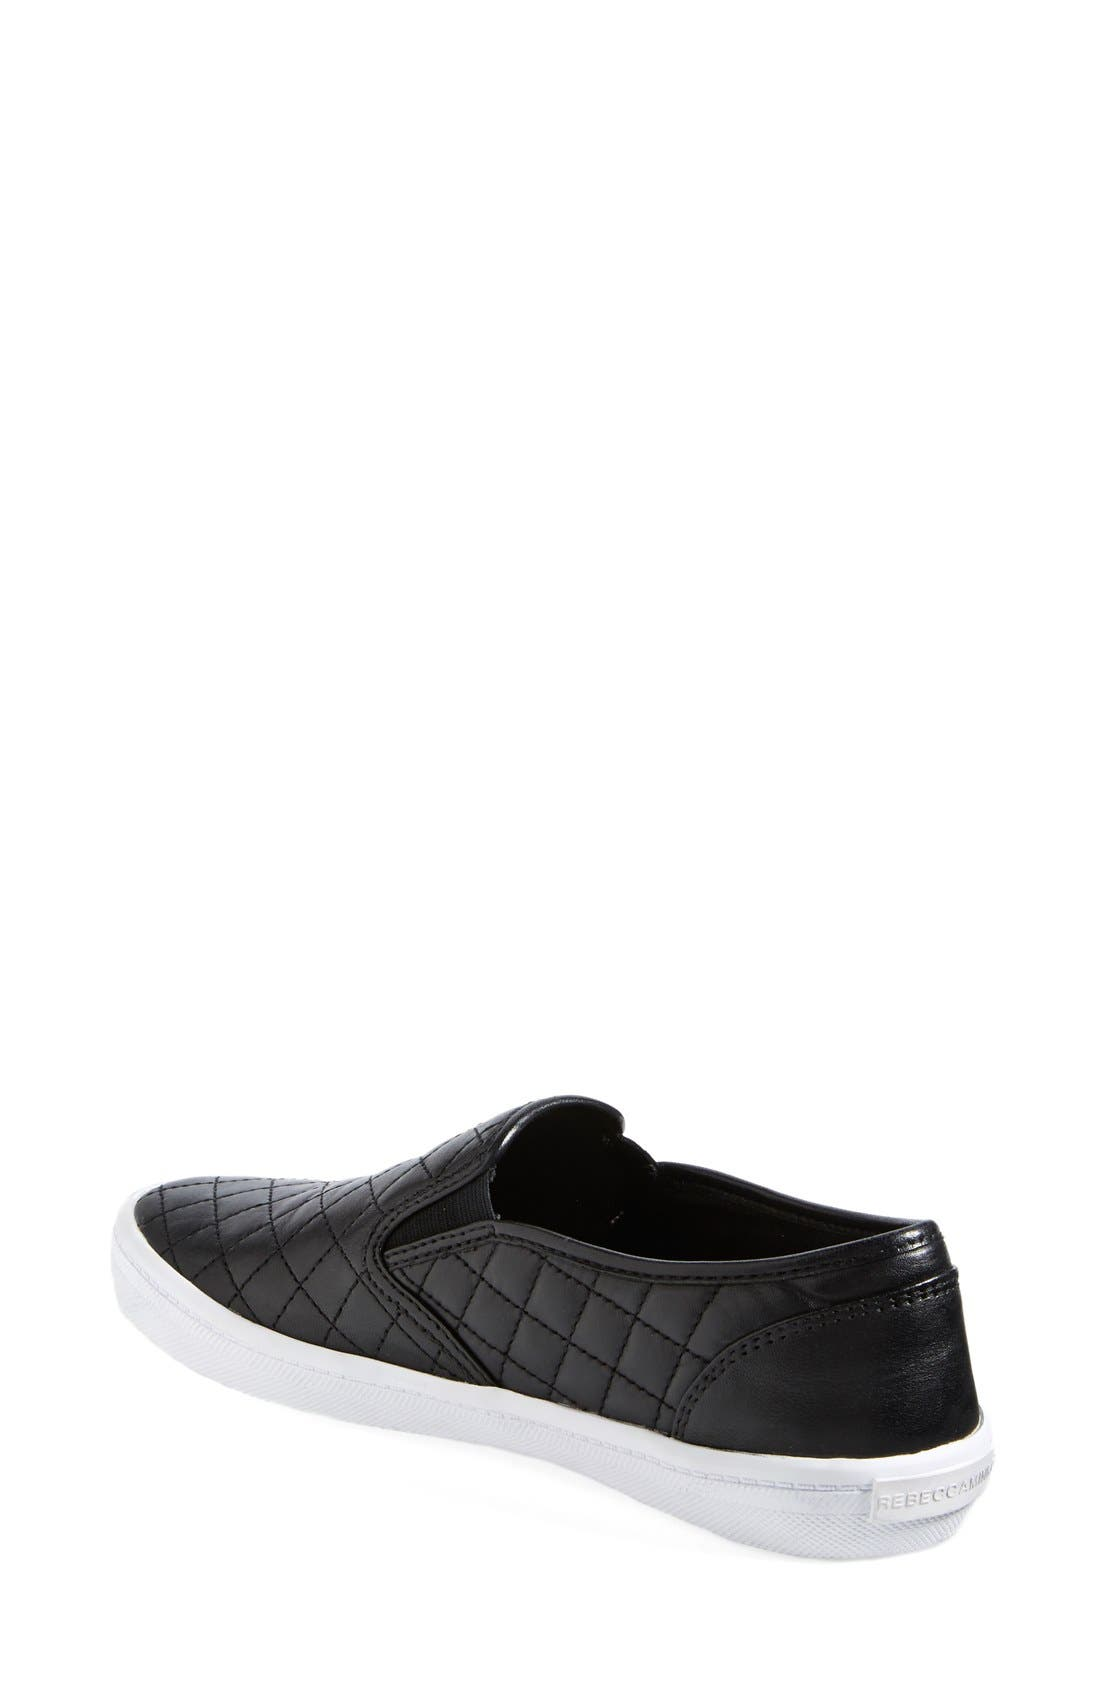 Alternate Image 2  - Rebecca Minkoff 'Sal' Slip-On Leather Sneaker (Women)